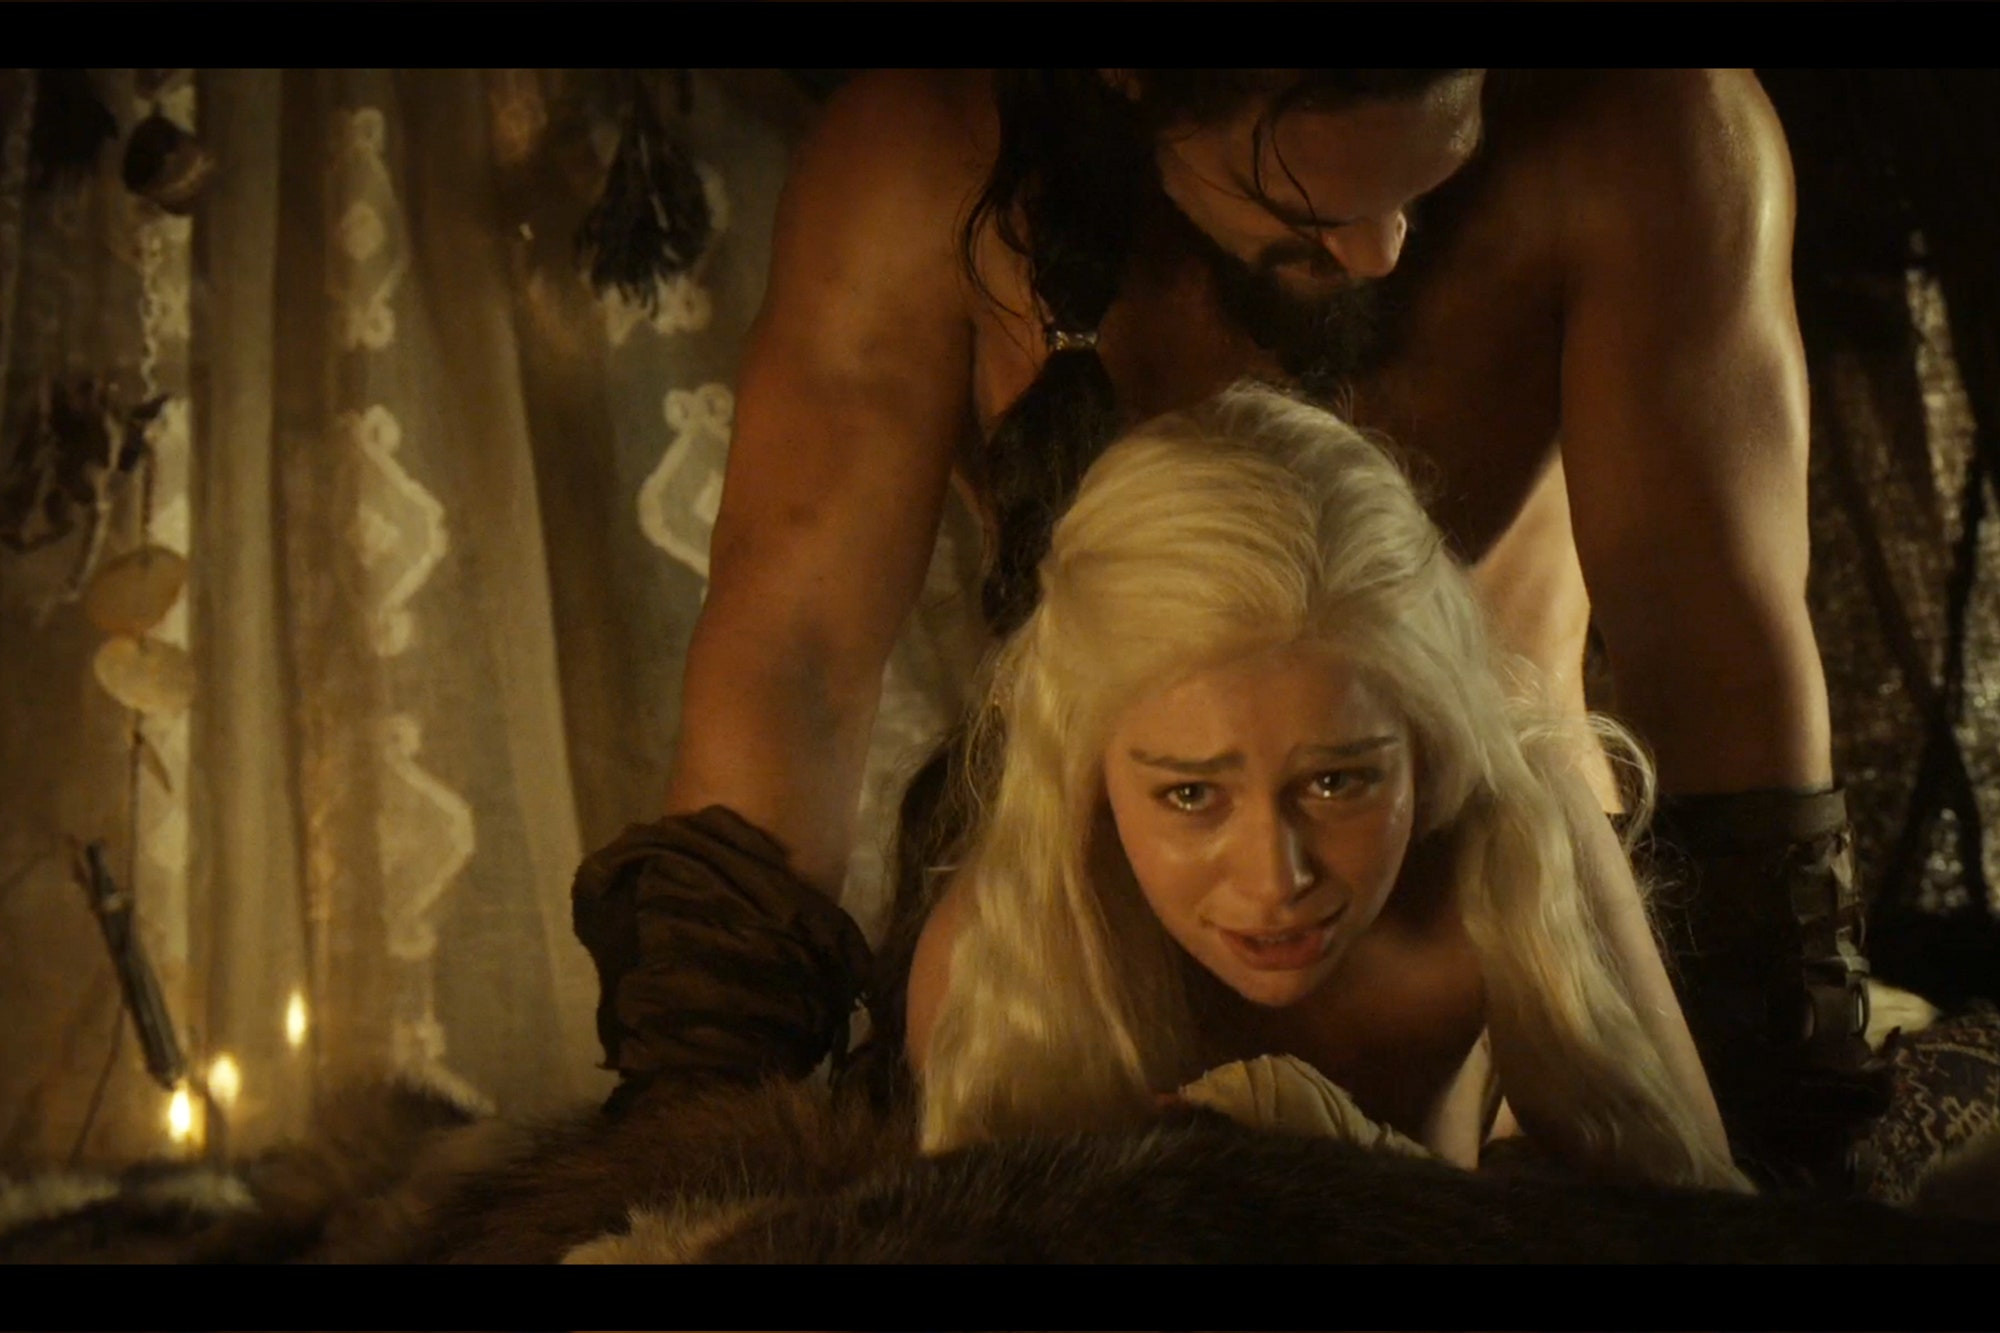 Sex Scenes From Got photo 8